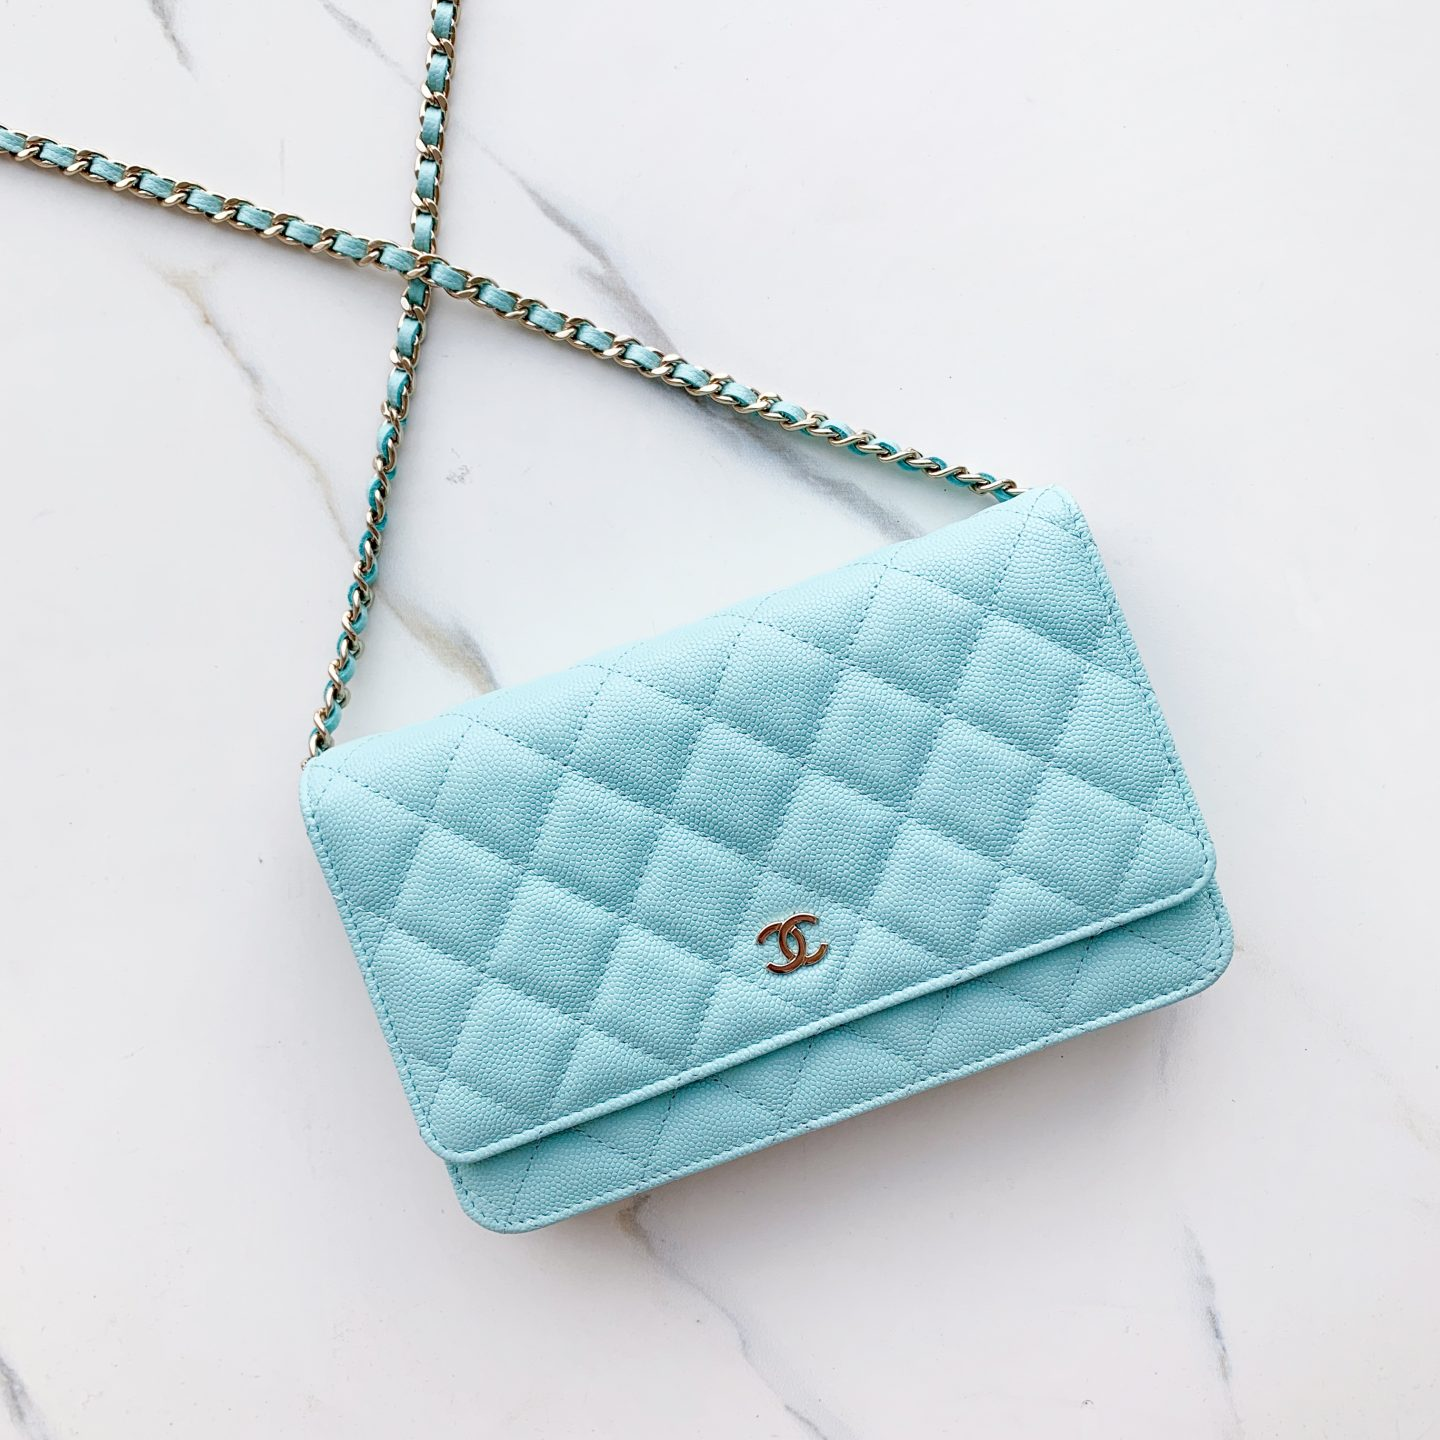 0f9da9e515fa The Best First Chanel Bag  - Chase Amie